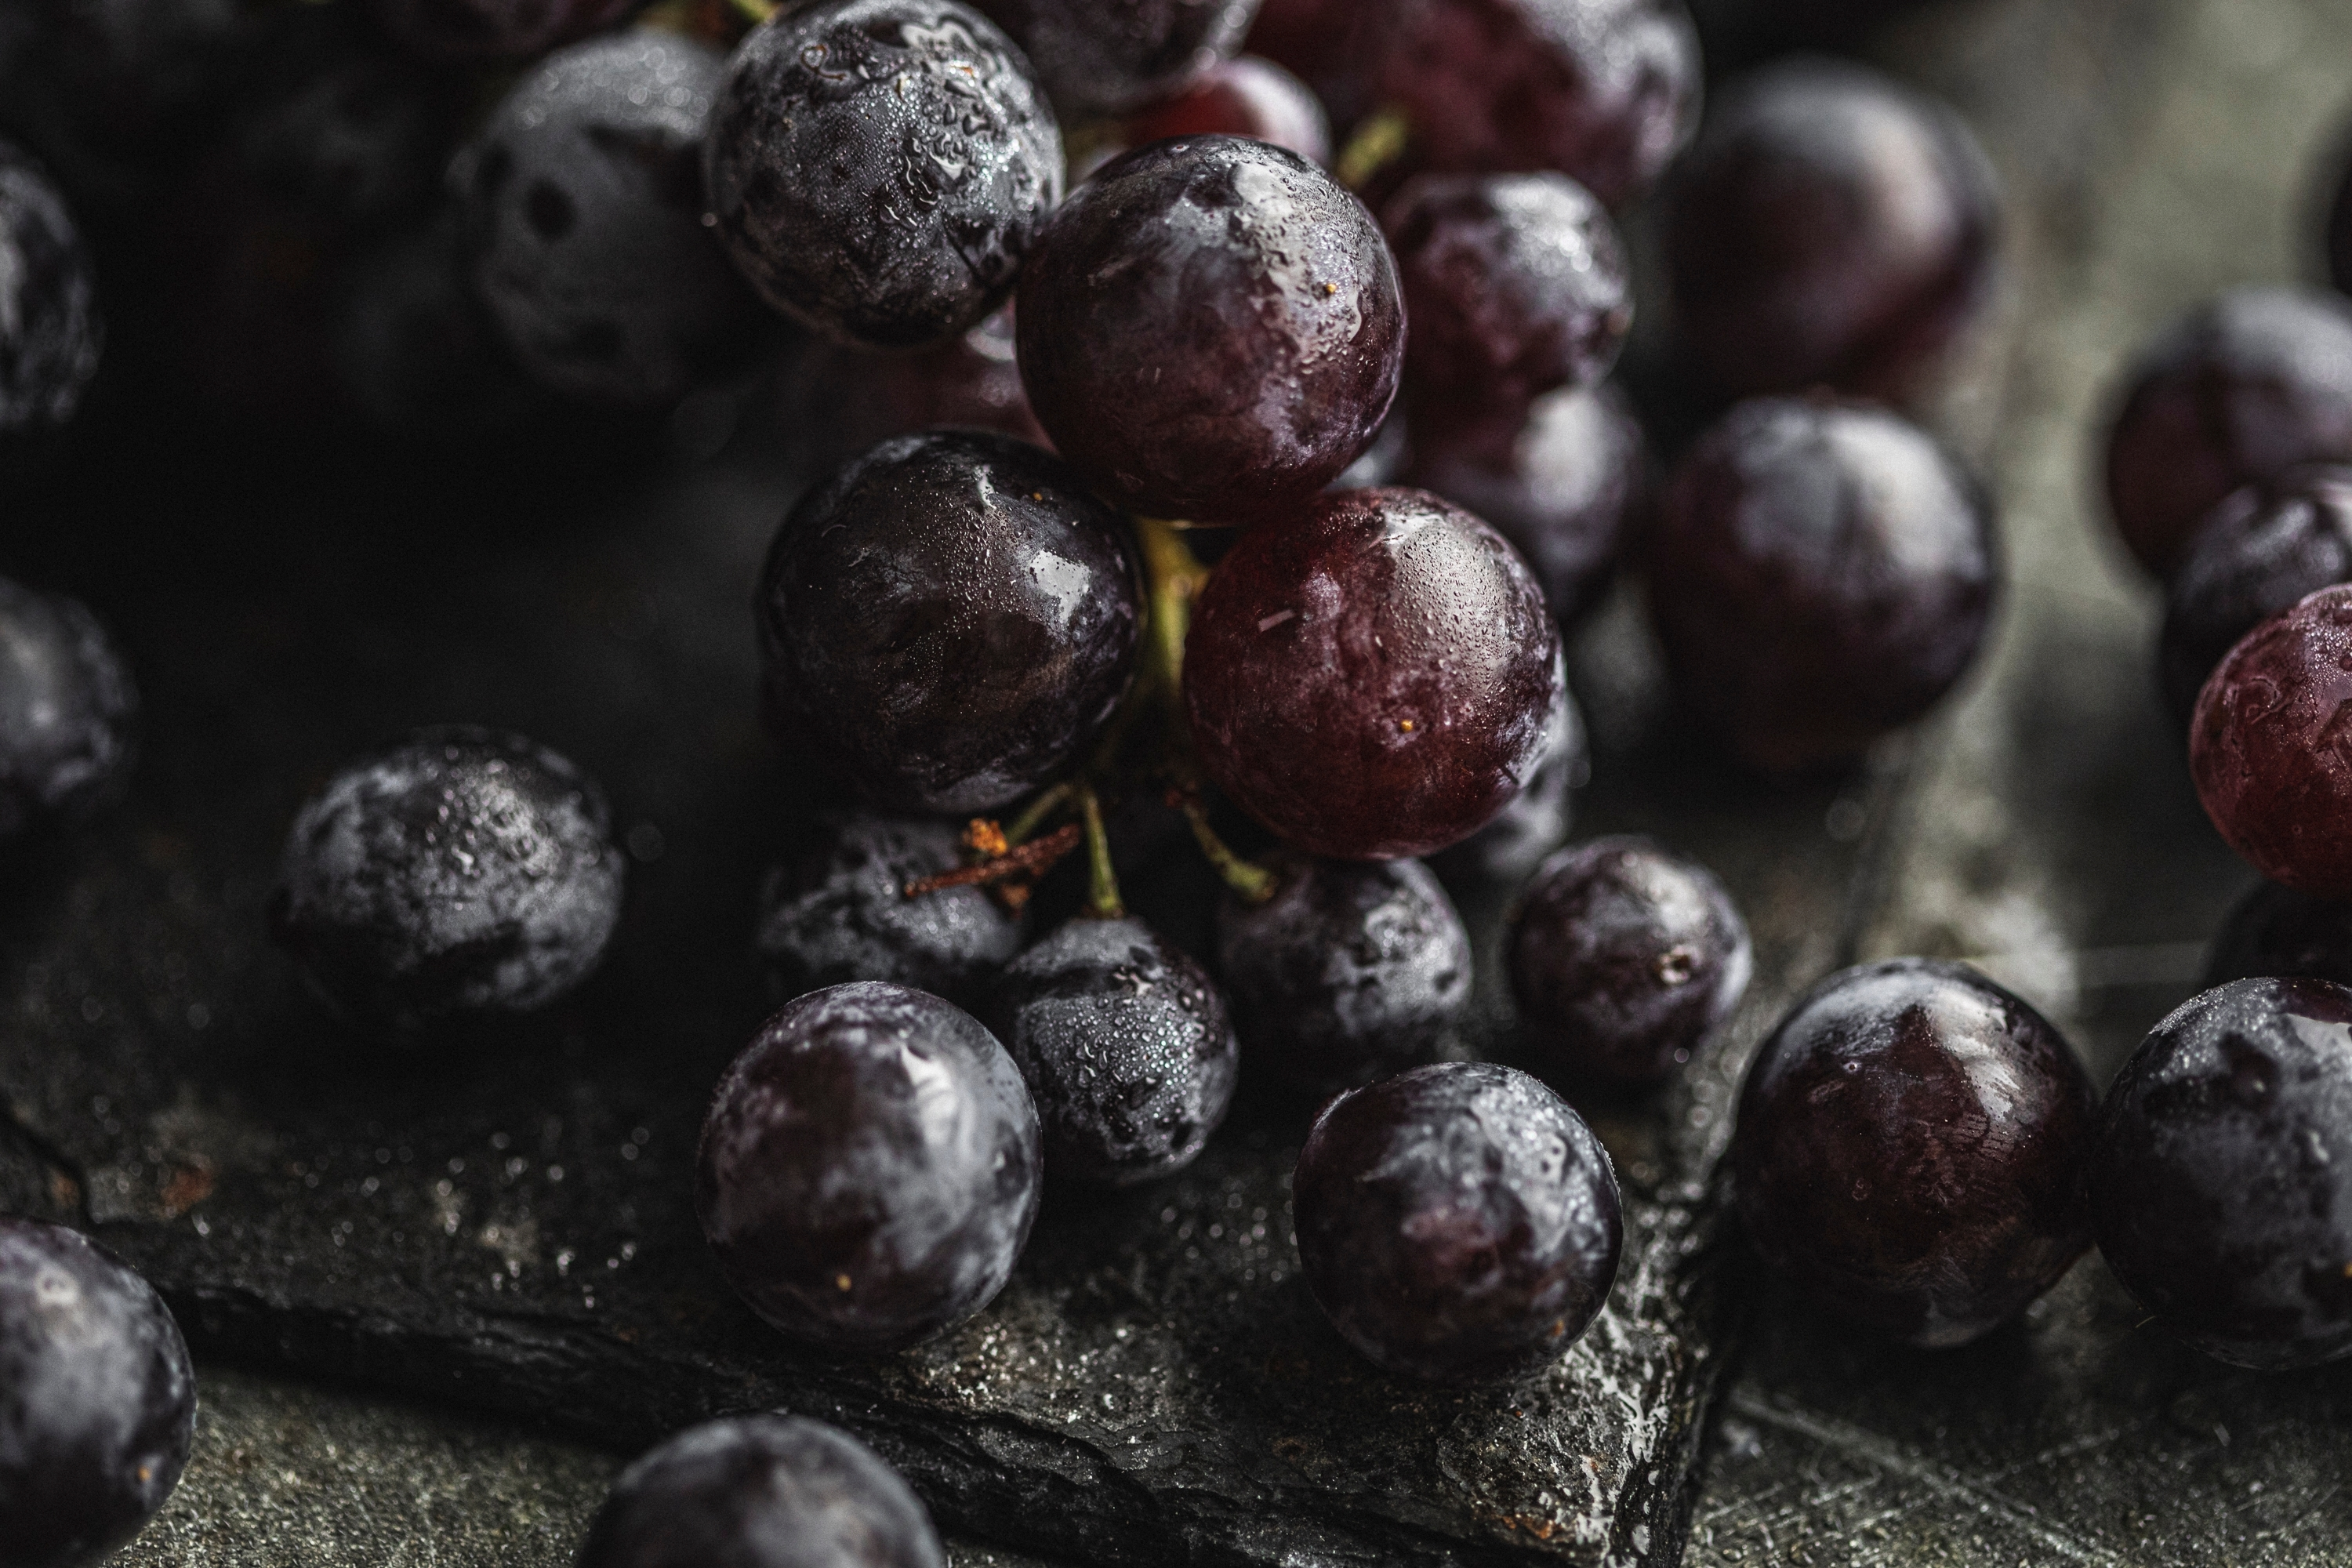 Seeded black muscat grapes